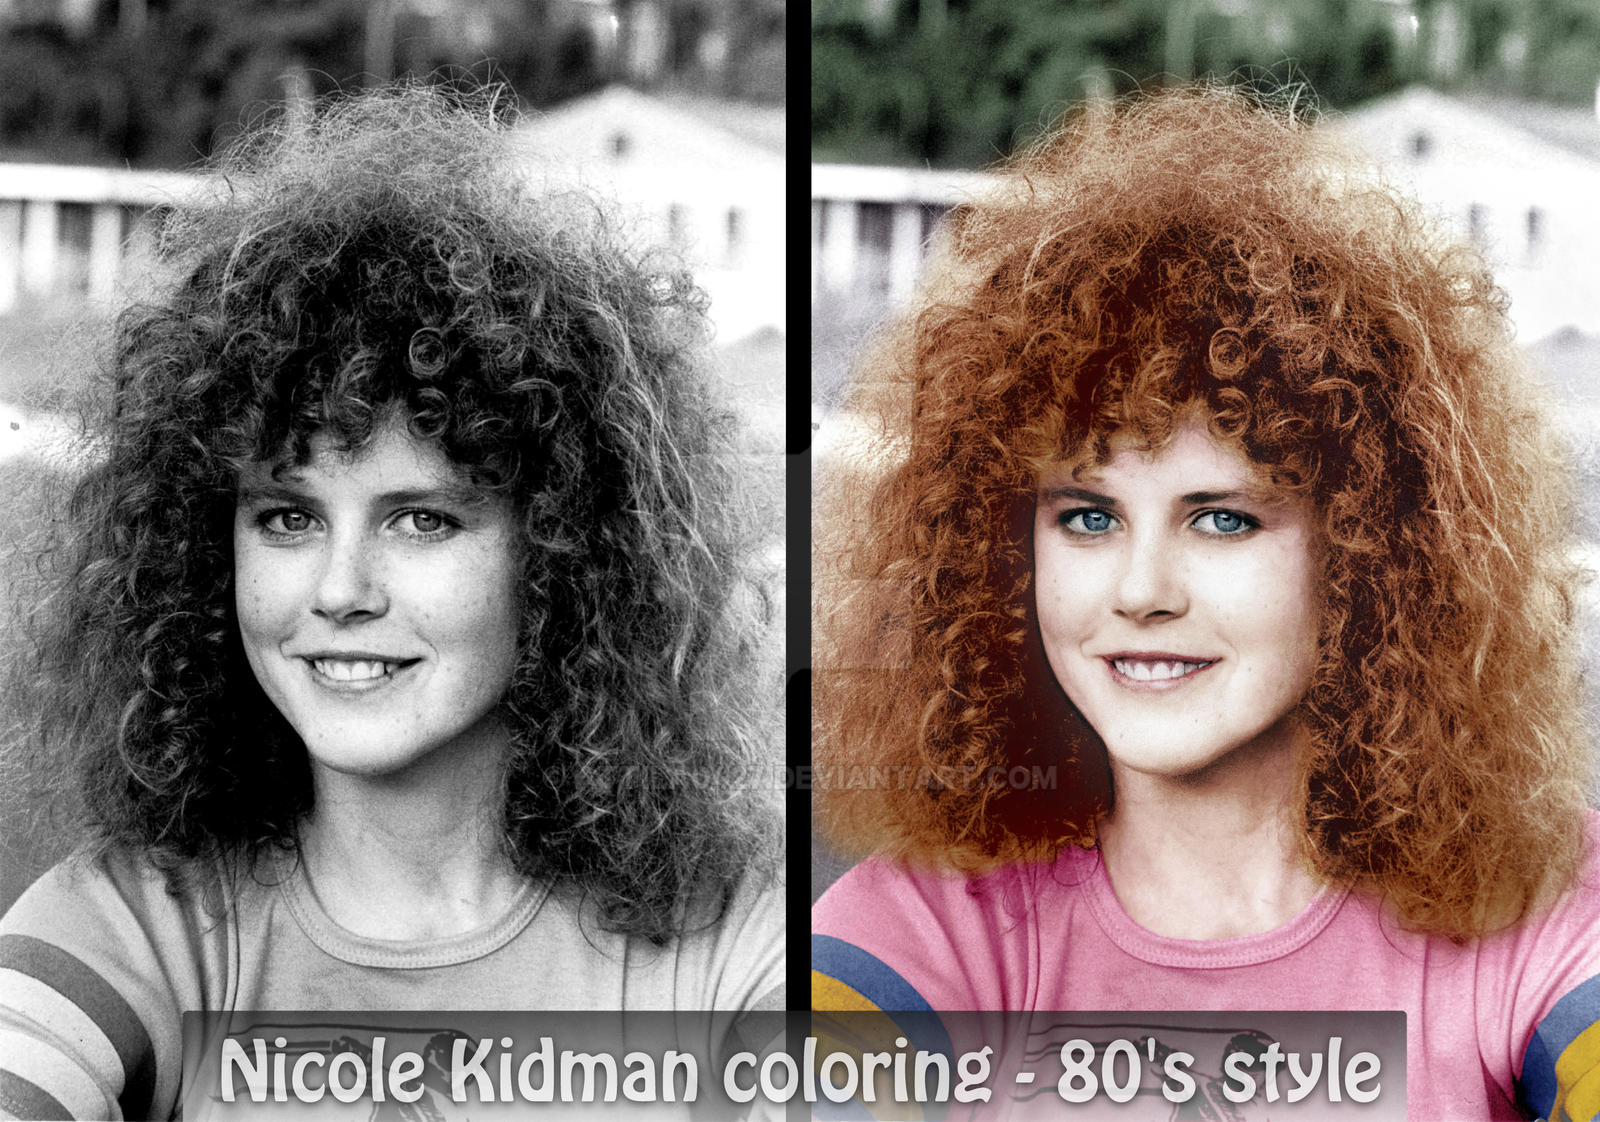 nicole kidman coloring 80s style by attila0427